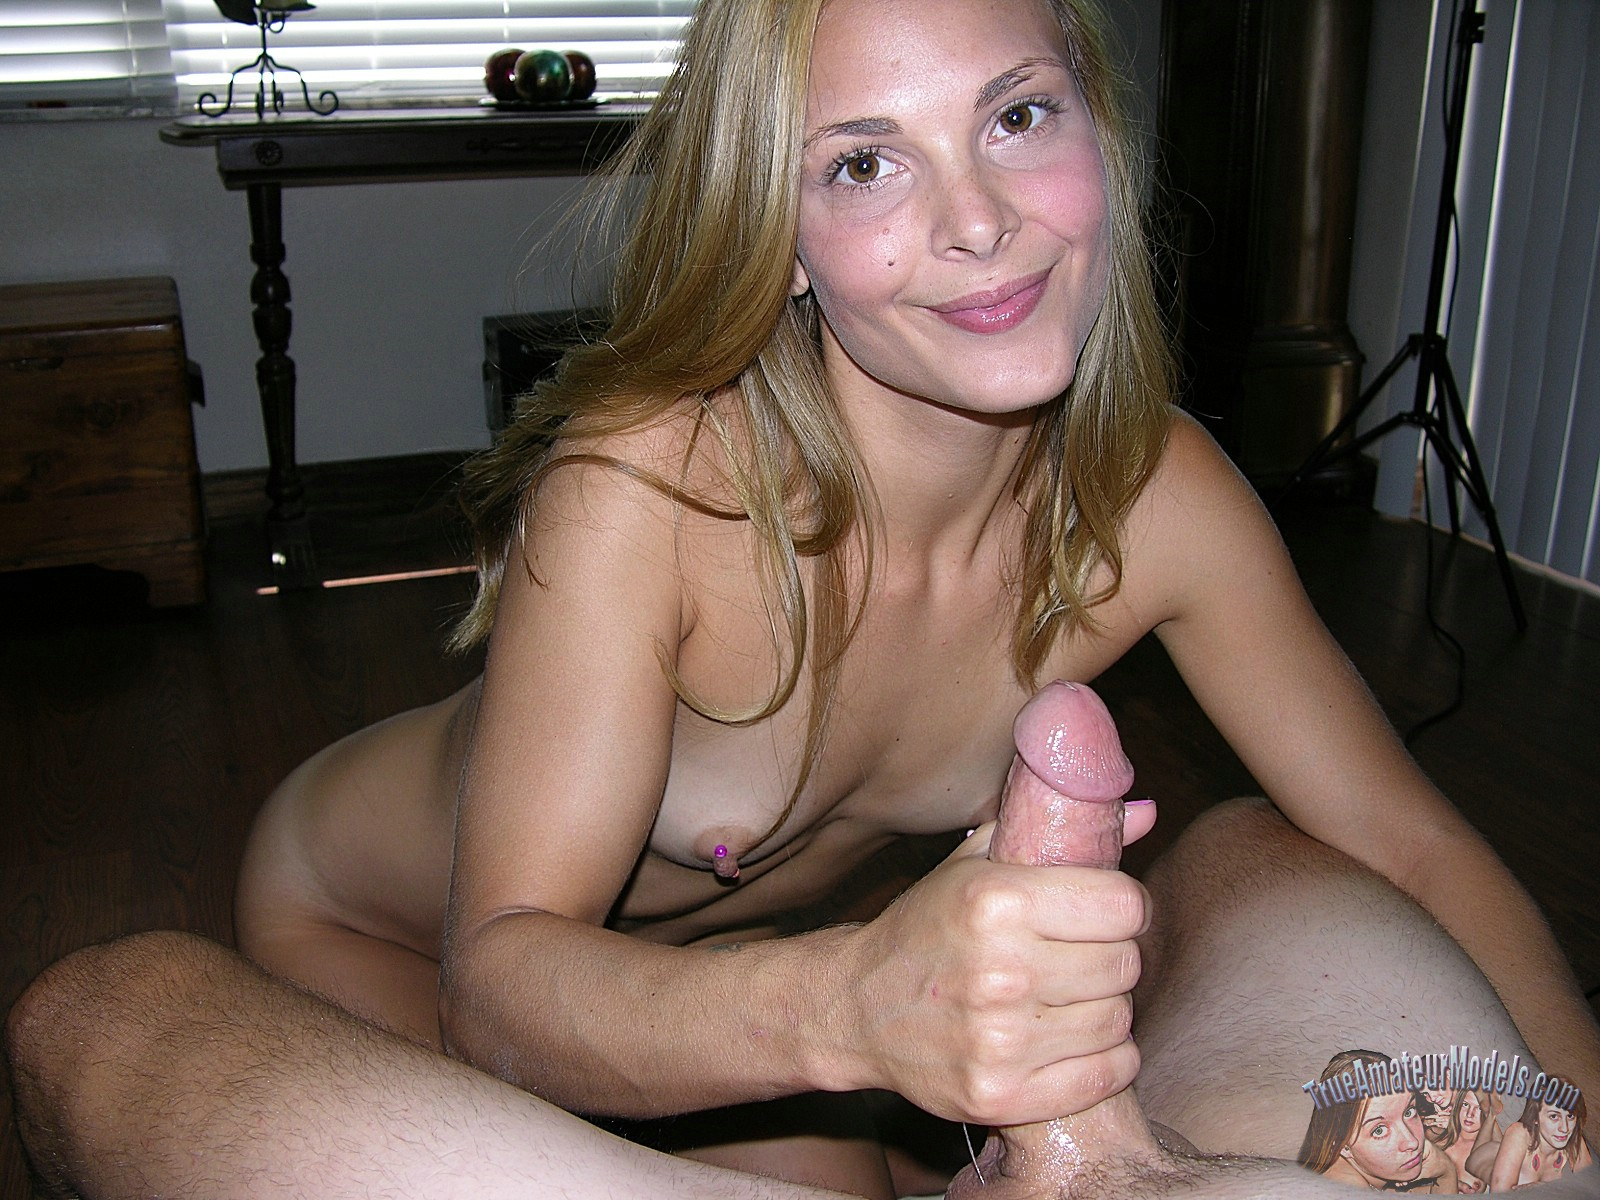 Girlfriend hand job nude